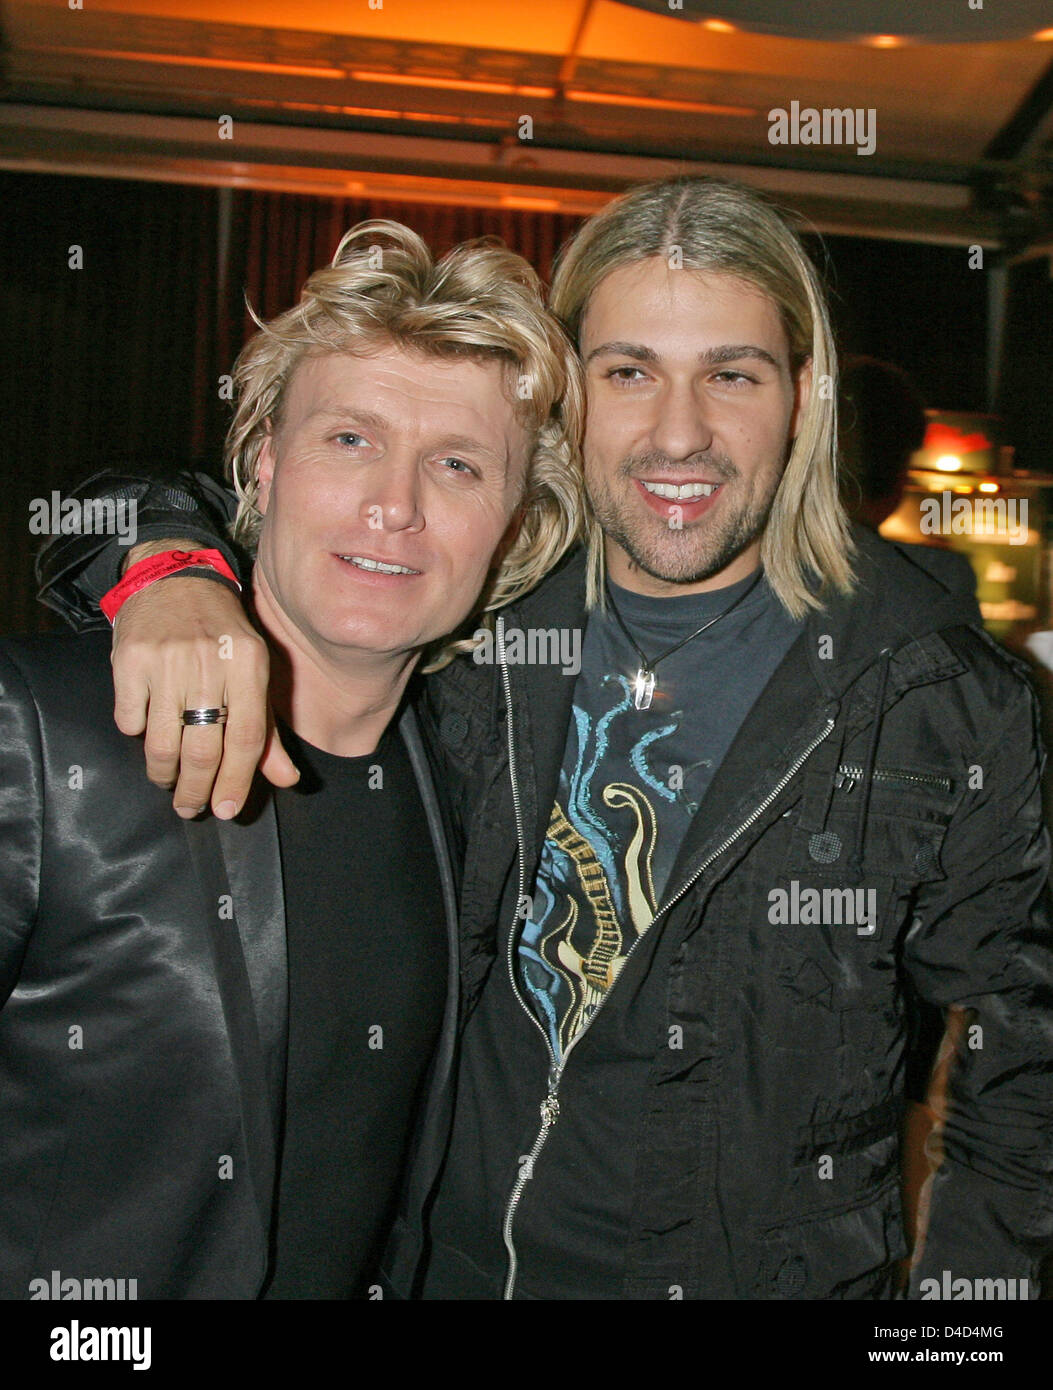 Dutch magician Hans Klok (L) and German violinist david Garrett are pictured at the after show party of live tv show 'Willkommen bei Carmen Nebel!', in Berlin, Germany, 15 March 2008. Photo: Jens Kalaene Stock Photo